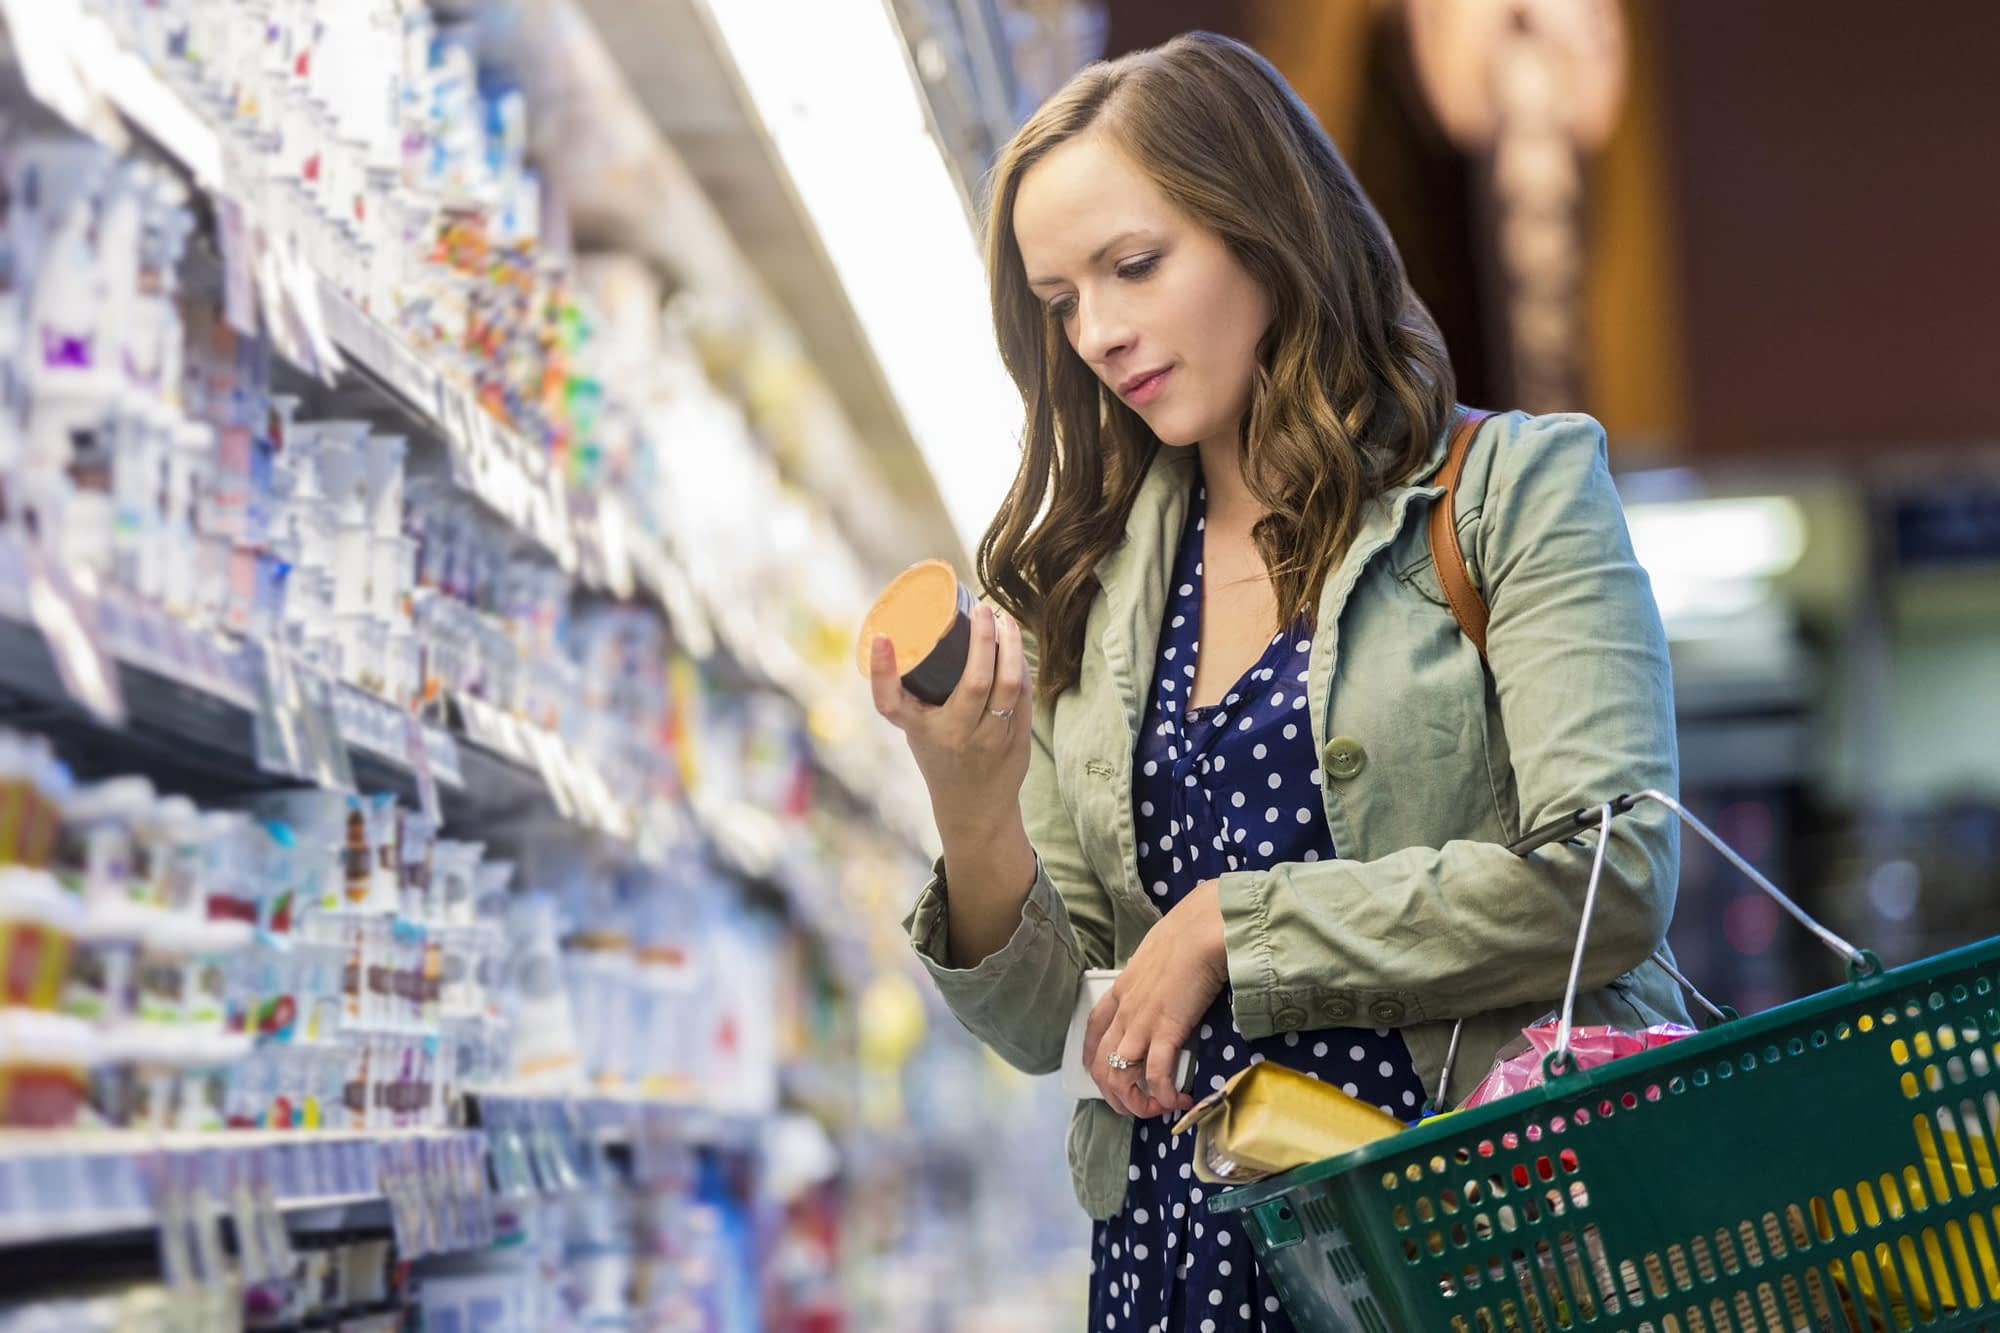 Plant-Based Food Sales Continue To Grow By Double Digits